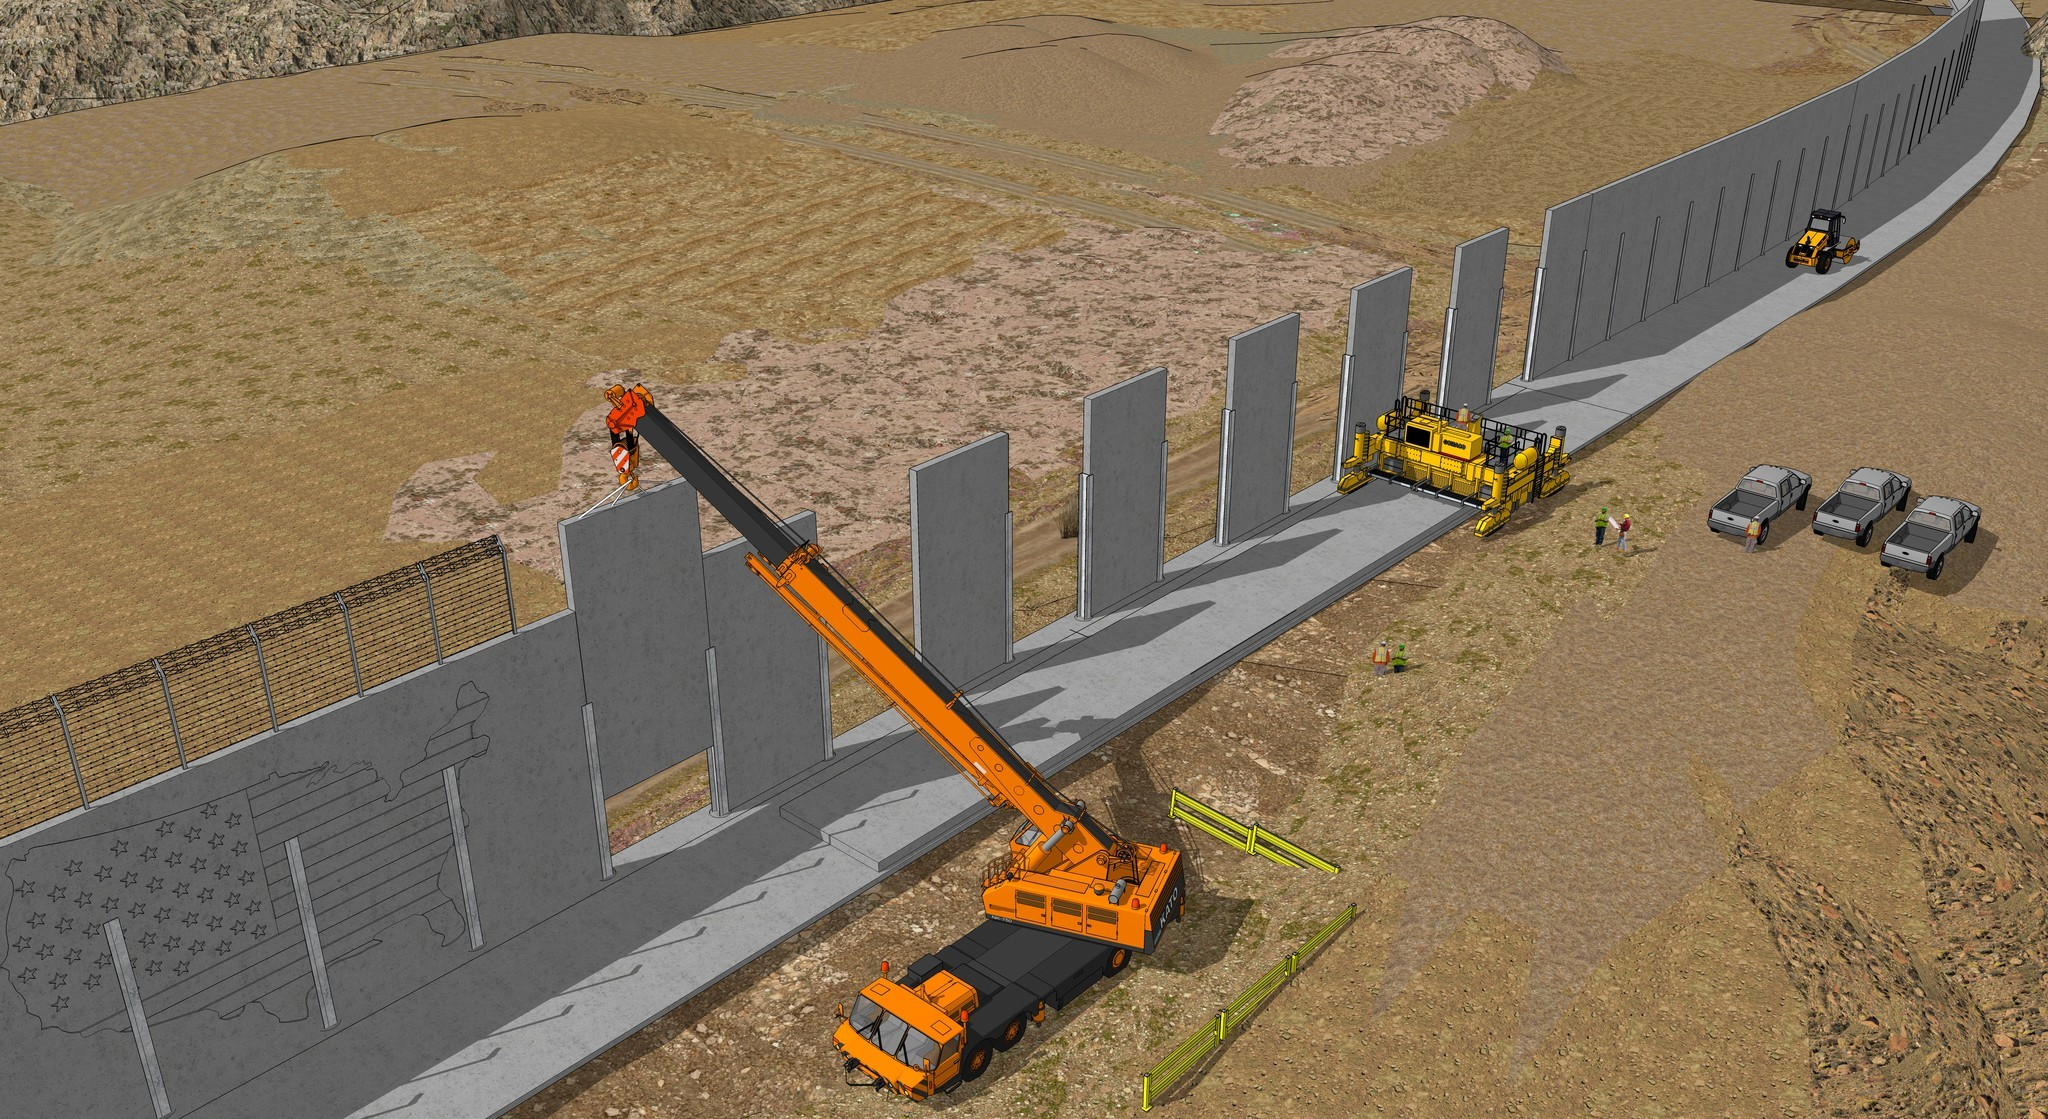 Exclusive Preview Trump Border Wall Proposals The San Diego - Wall designs pictures